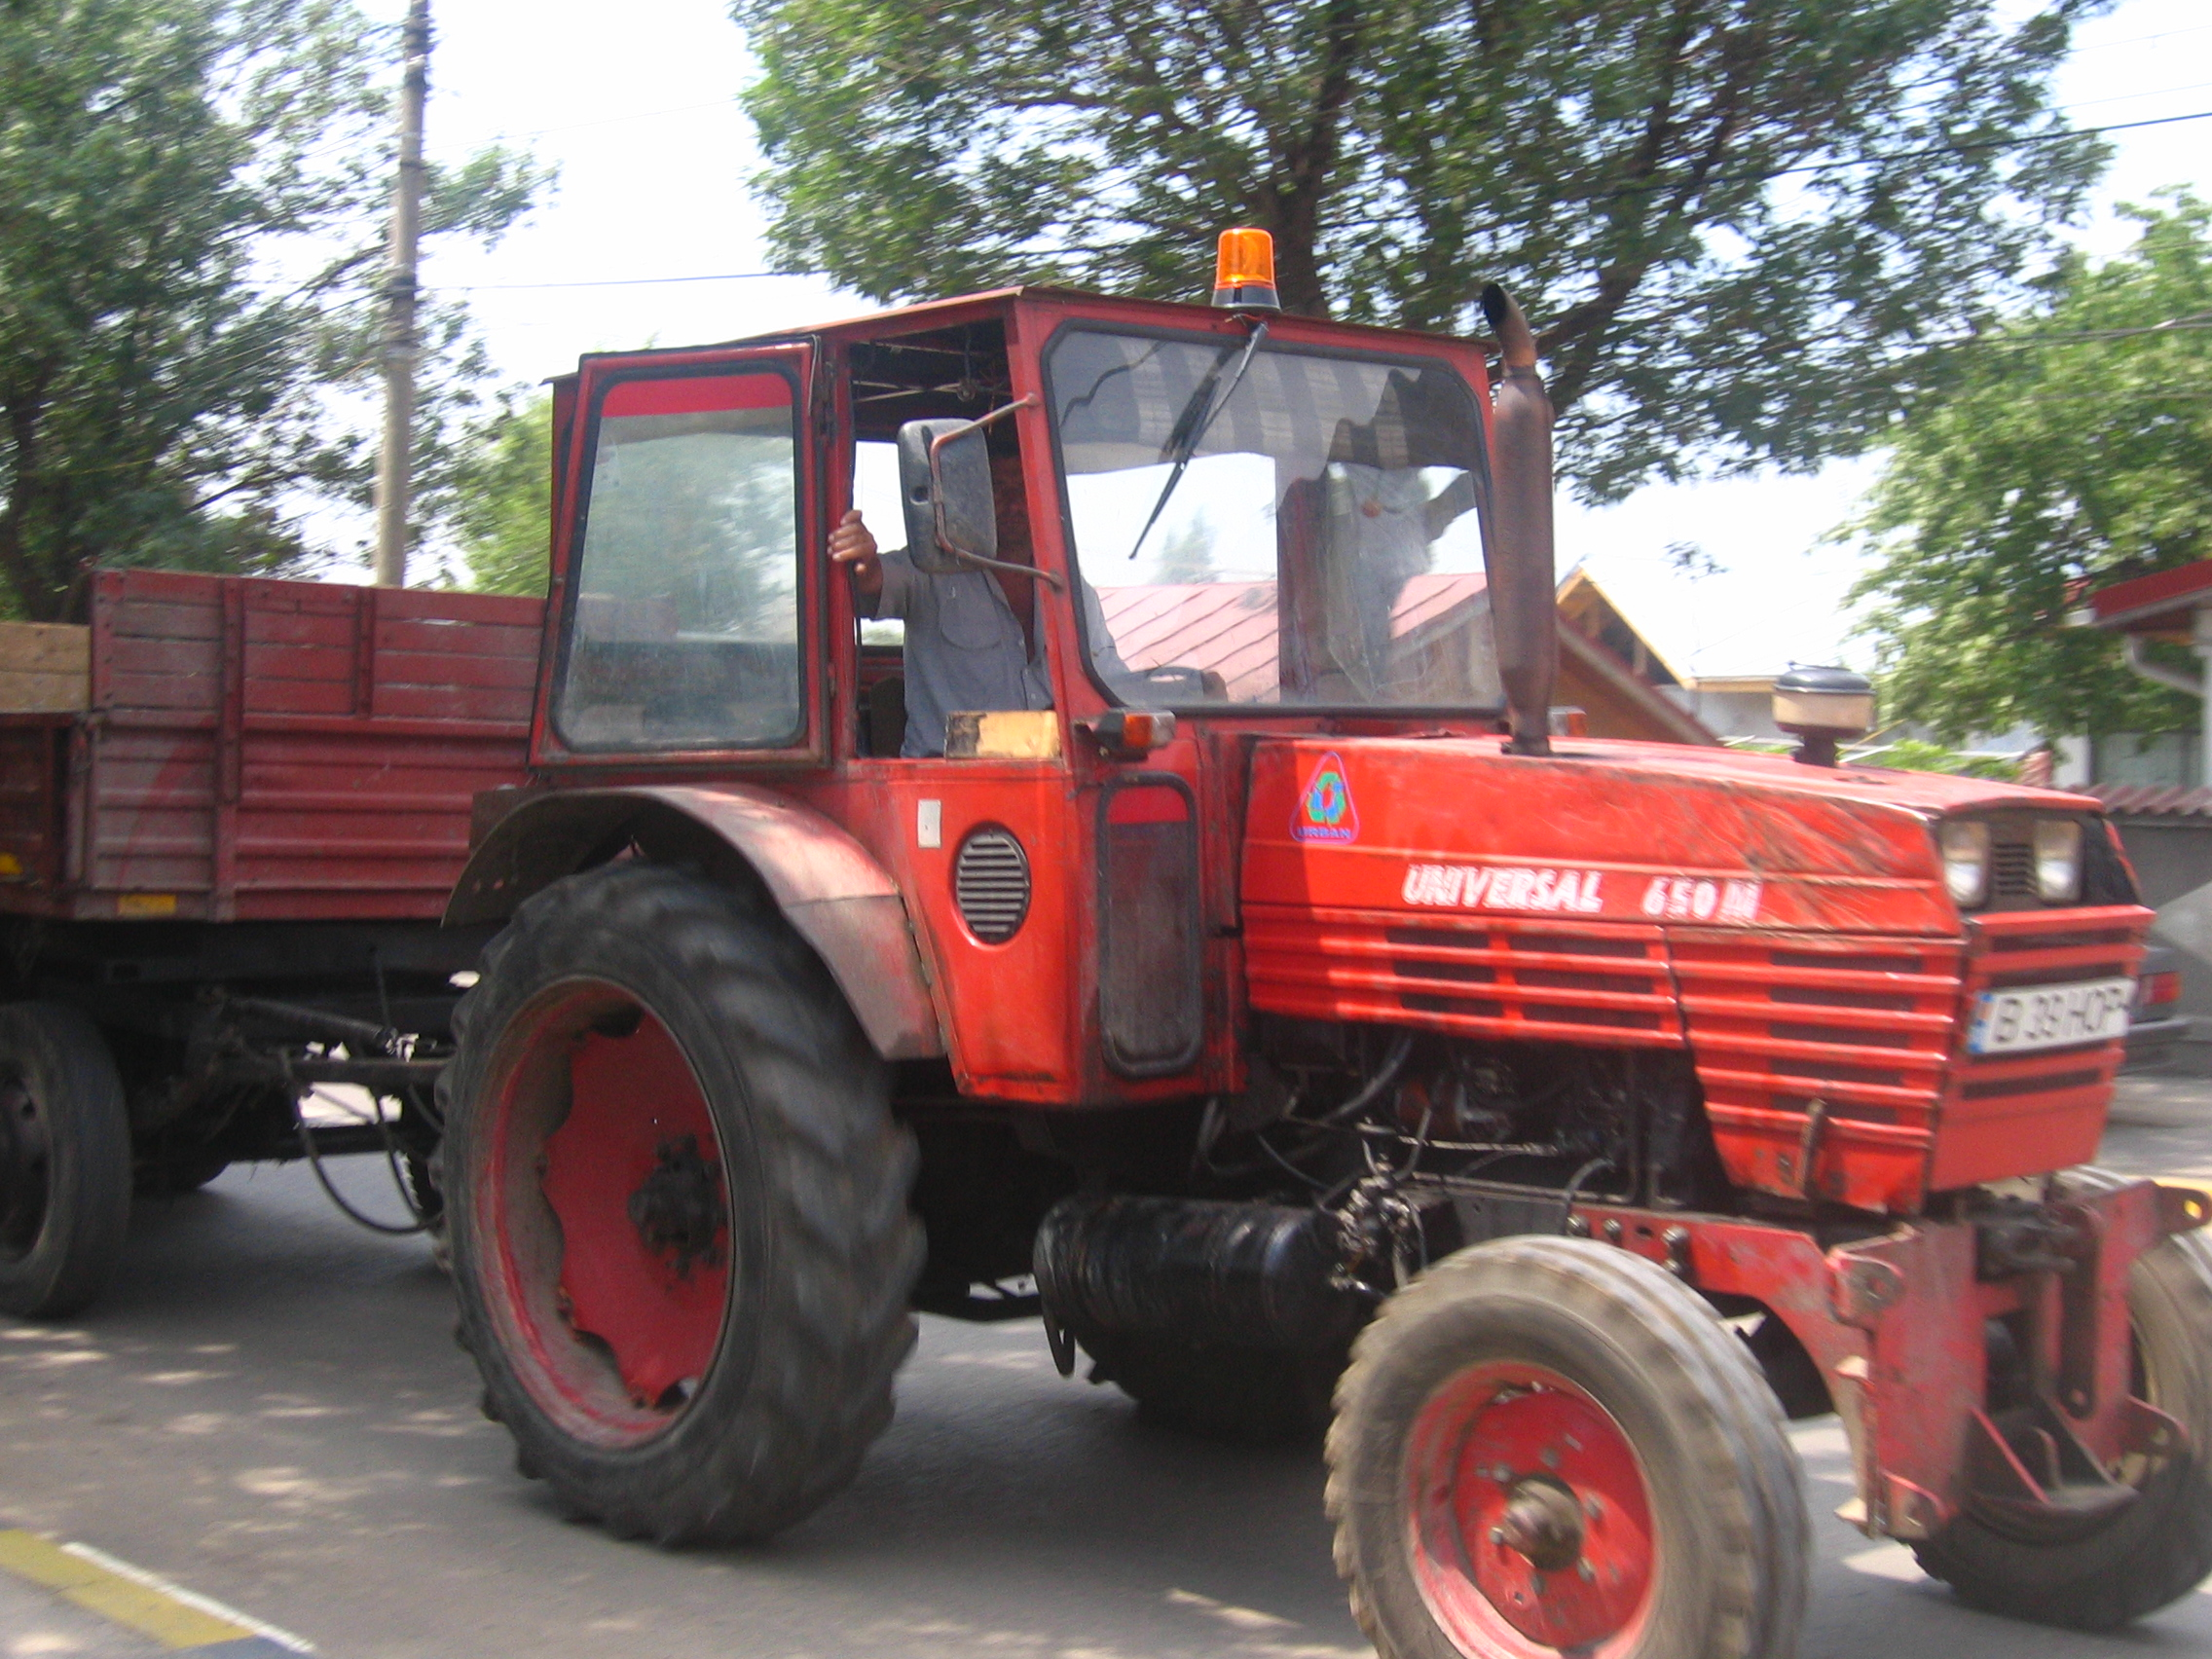 File:UTB - Tractor Universal 650M in Bucharest 2007.jpg